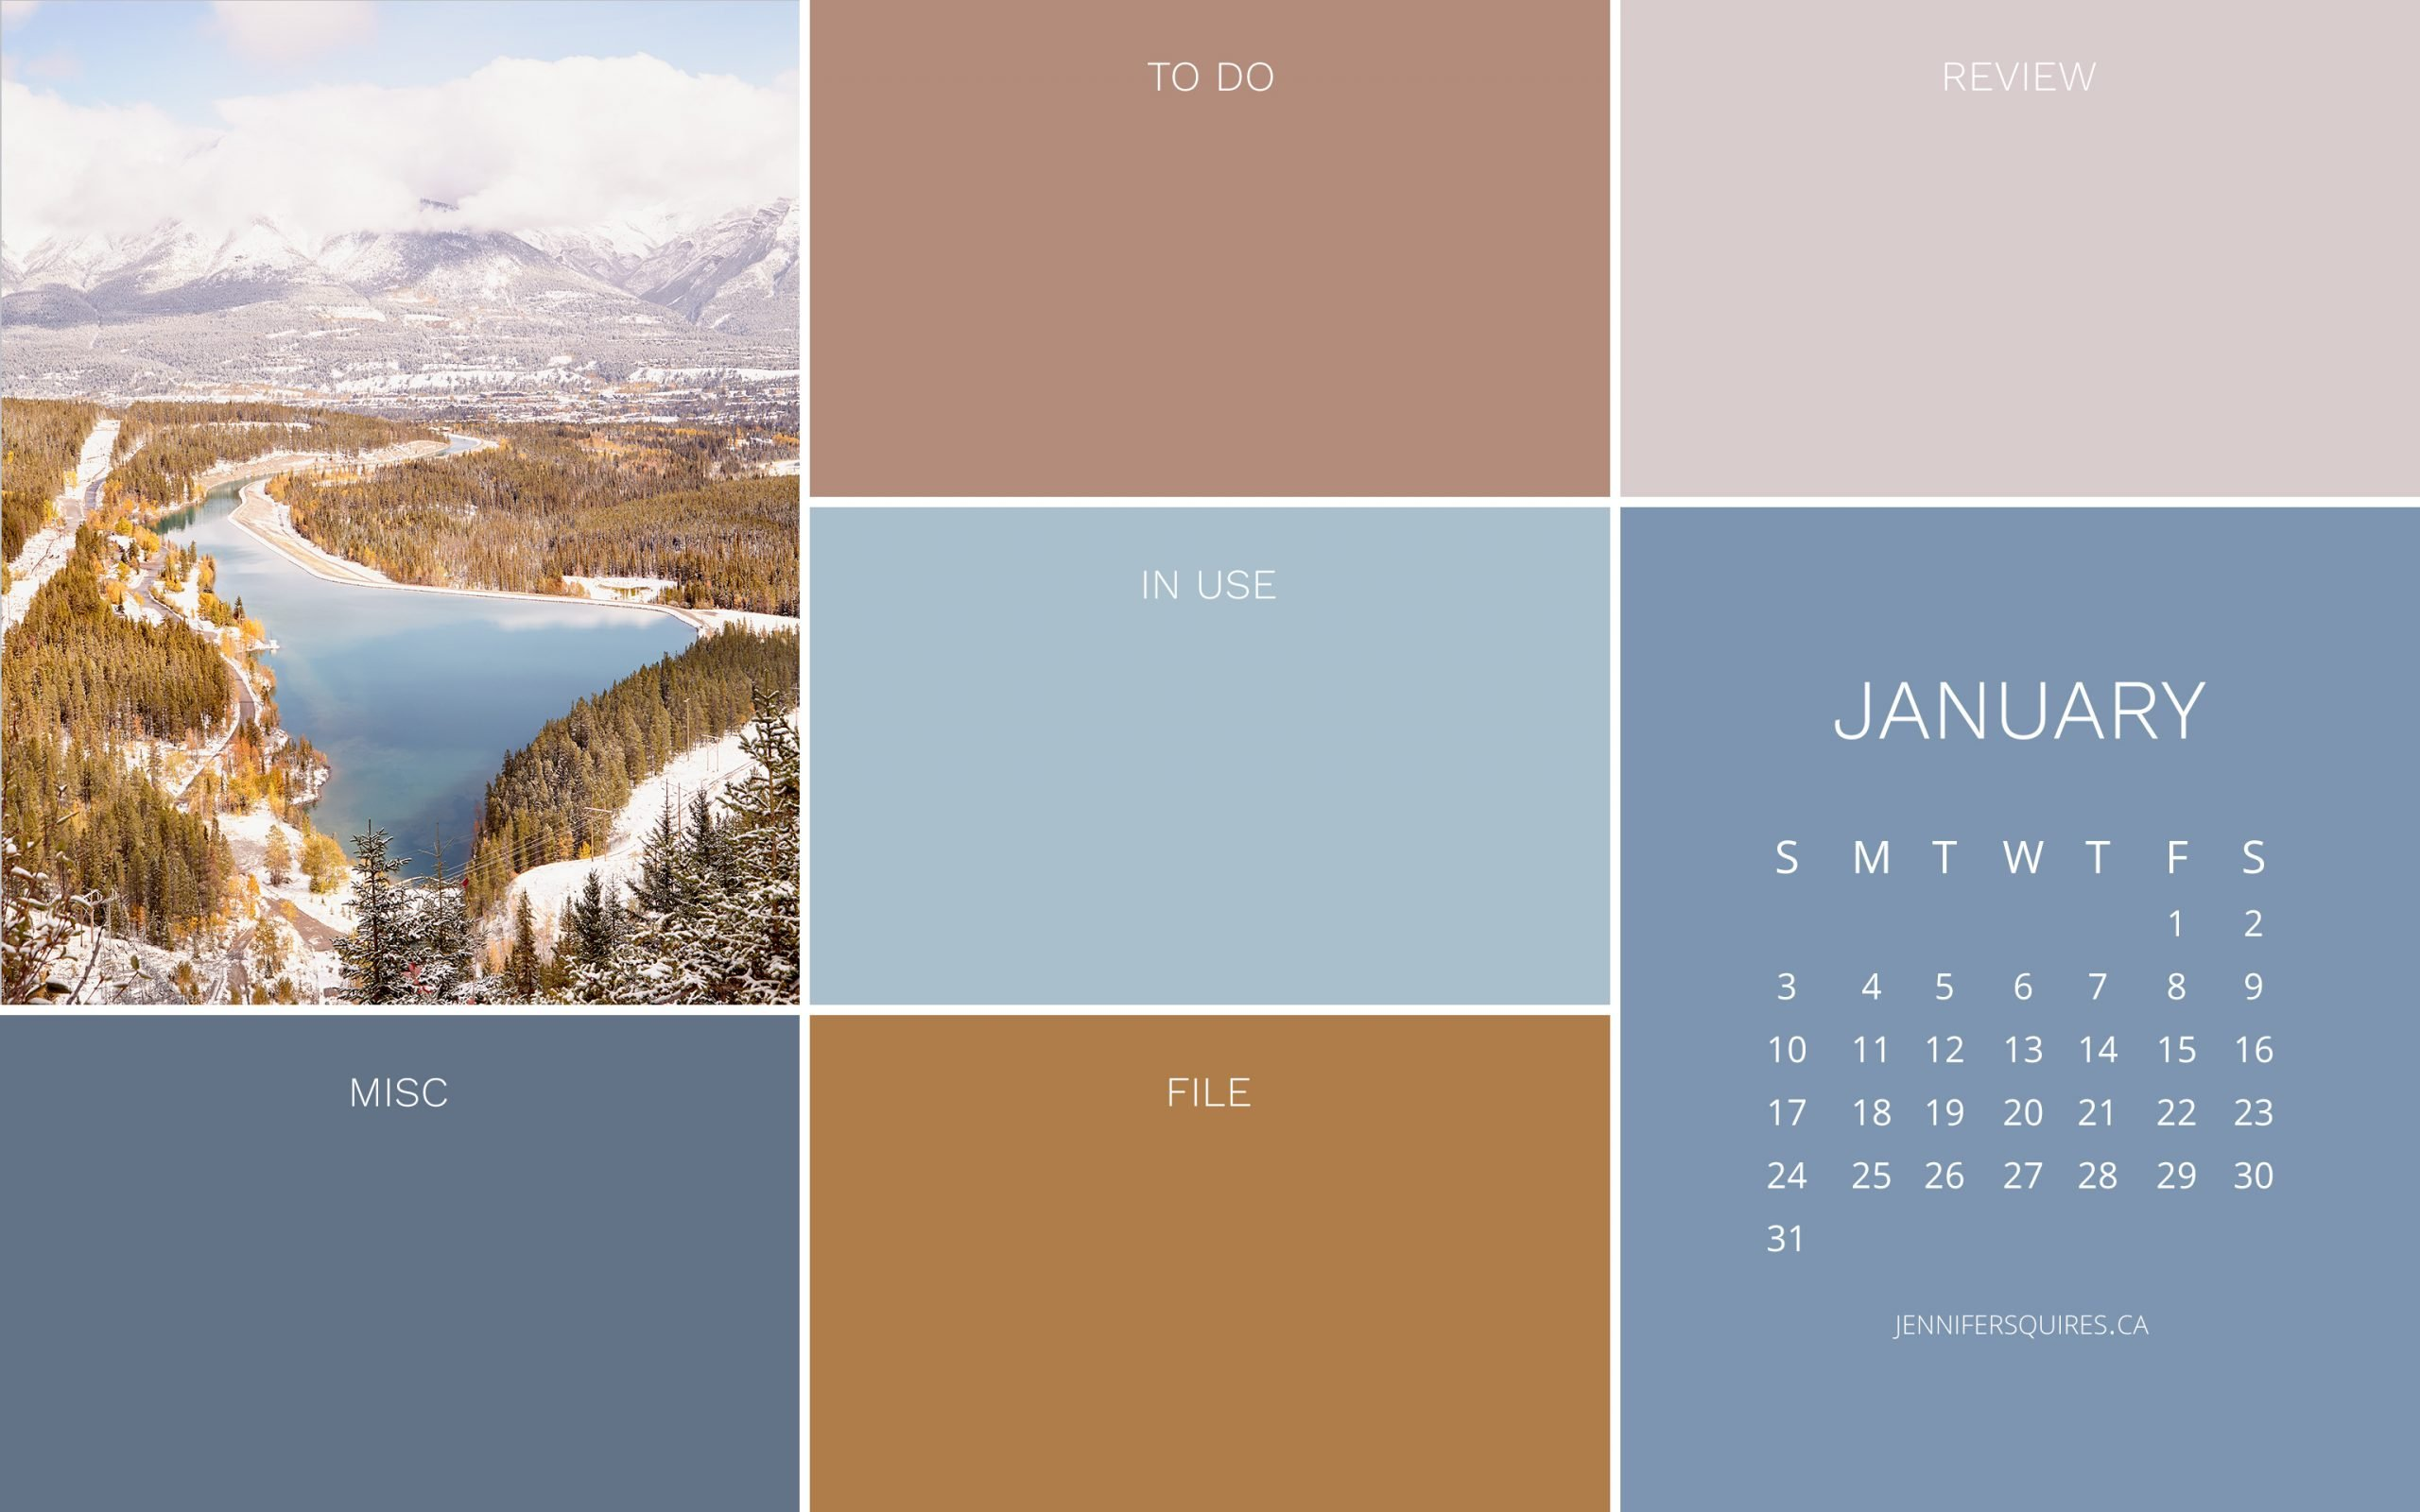 January 2021 Wallpaper with Calendar for iPhone and Desktop 2560x1600